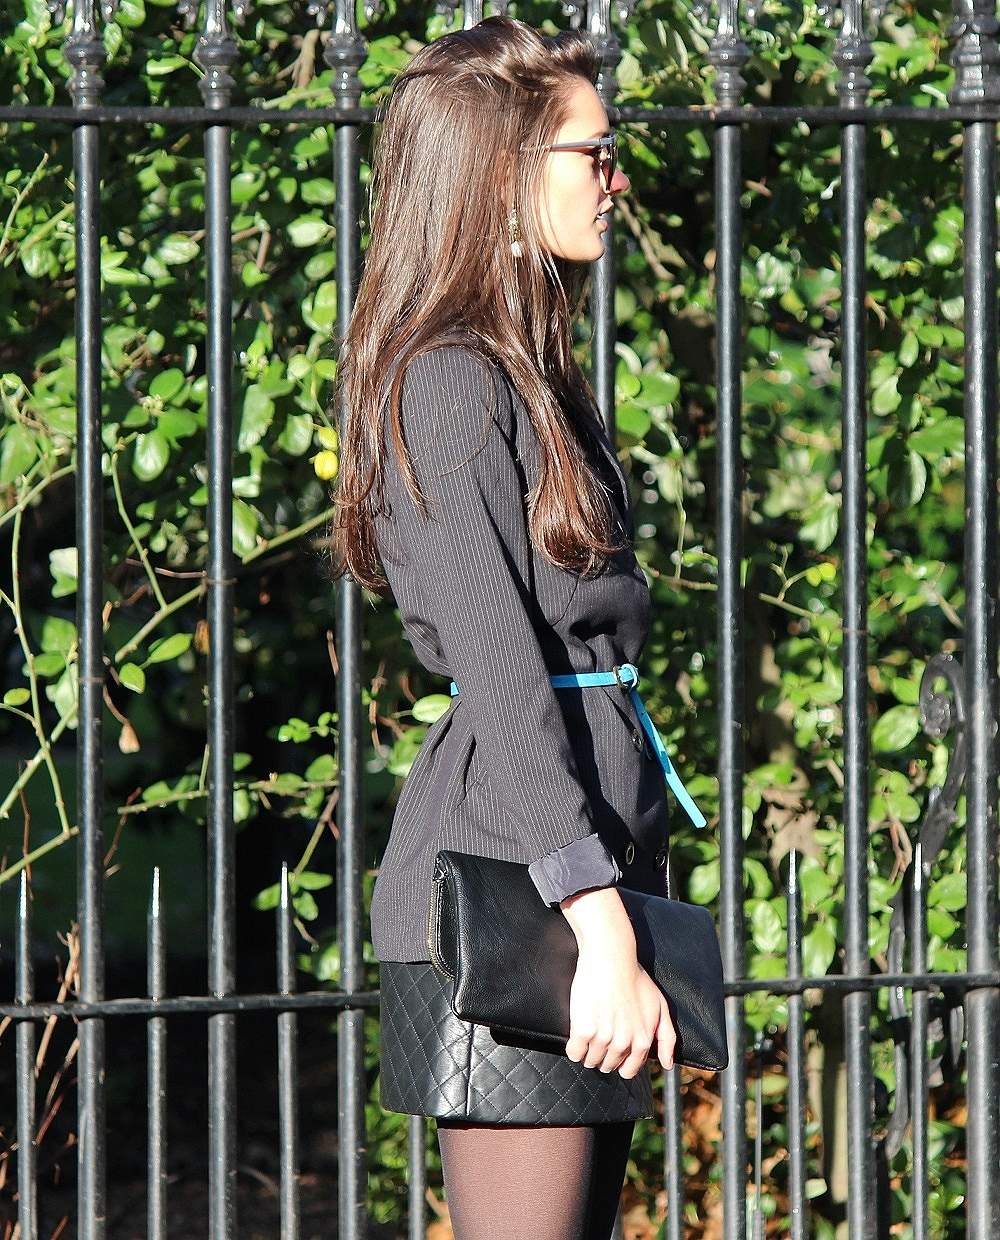 peexo fashion blog wearing pinstrpe blazer and leather quilted skirt and topshop lave bralet and black clutch bag